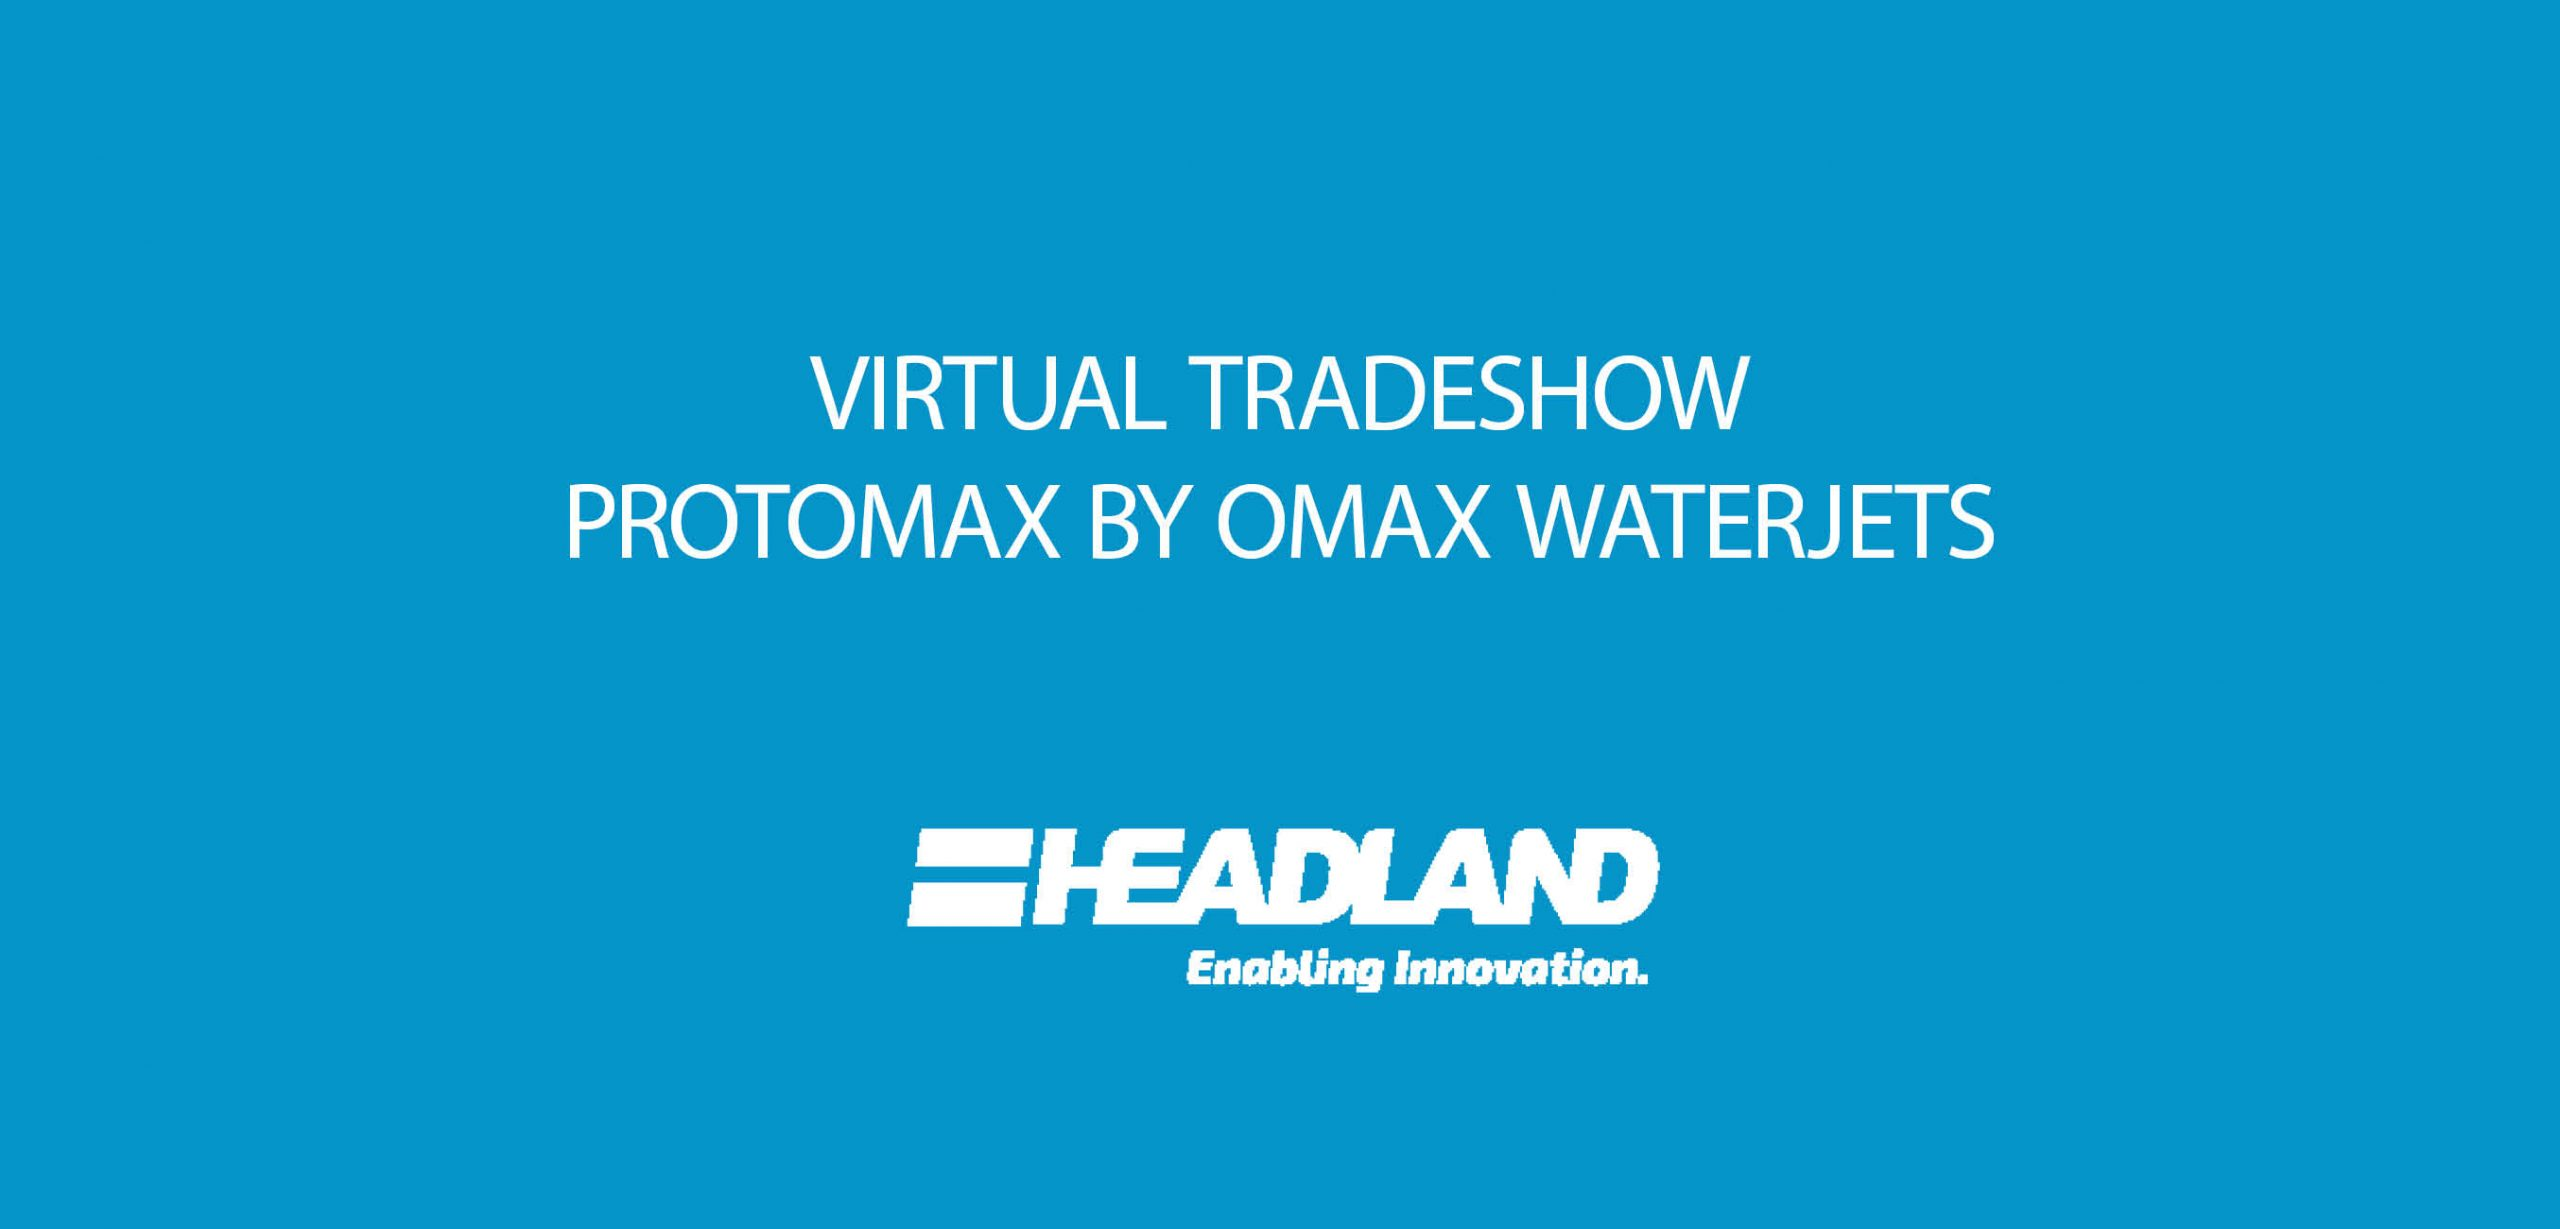 Protomax_virtual_tradeshow